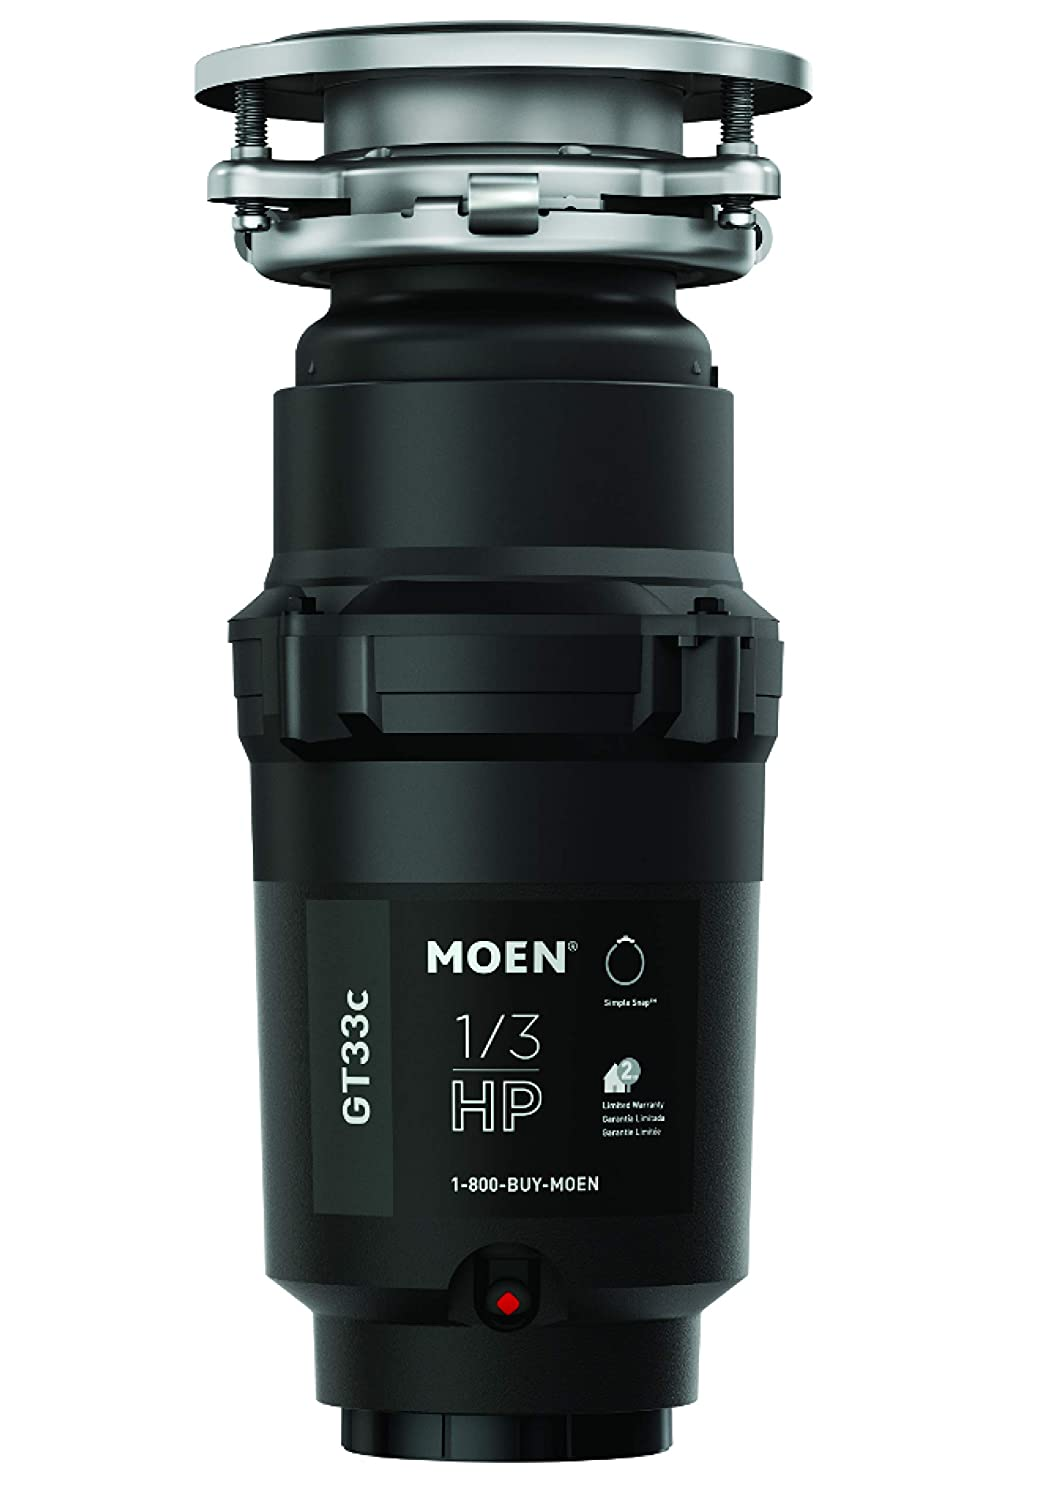 Moen GT33C GT Series 1/3 Horsepower Garbage Disposal with Fast Track Technology